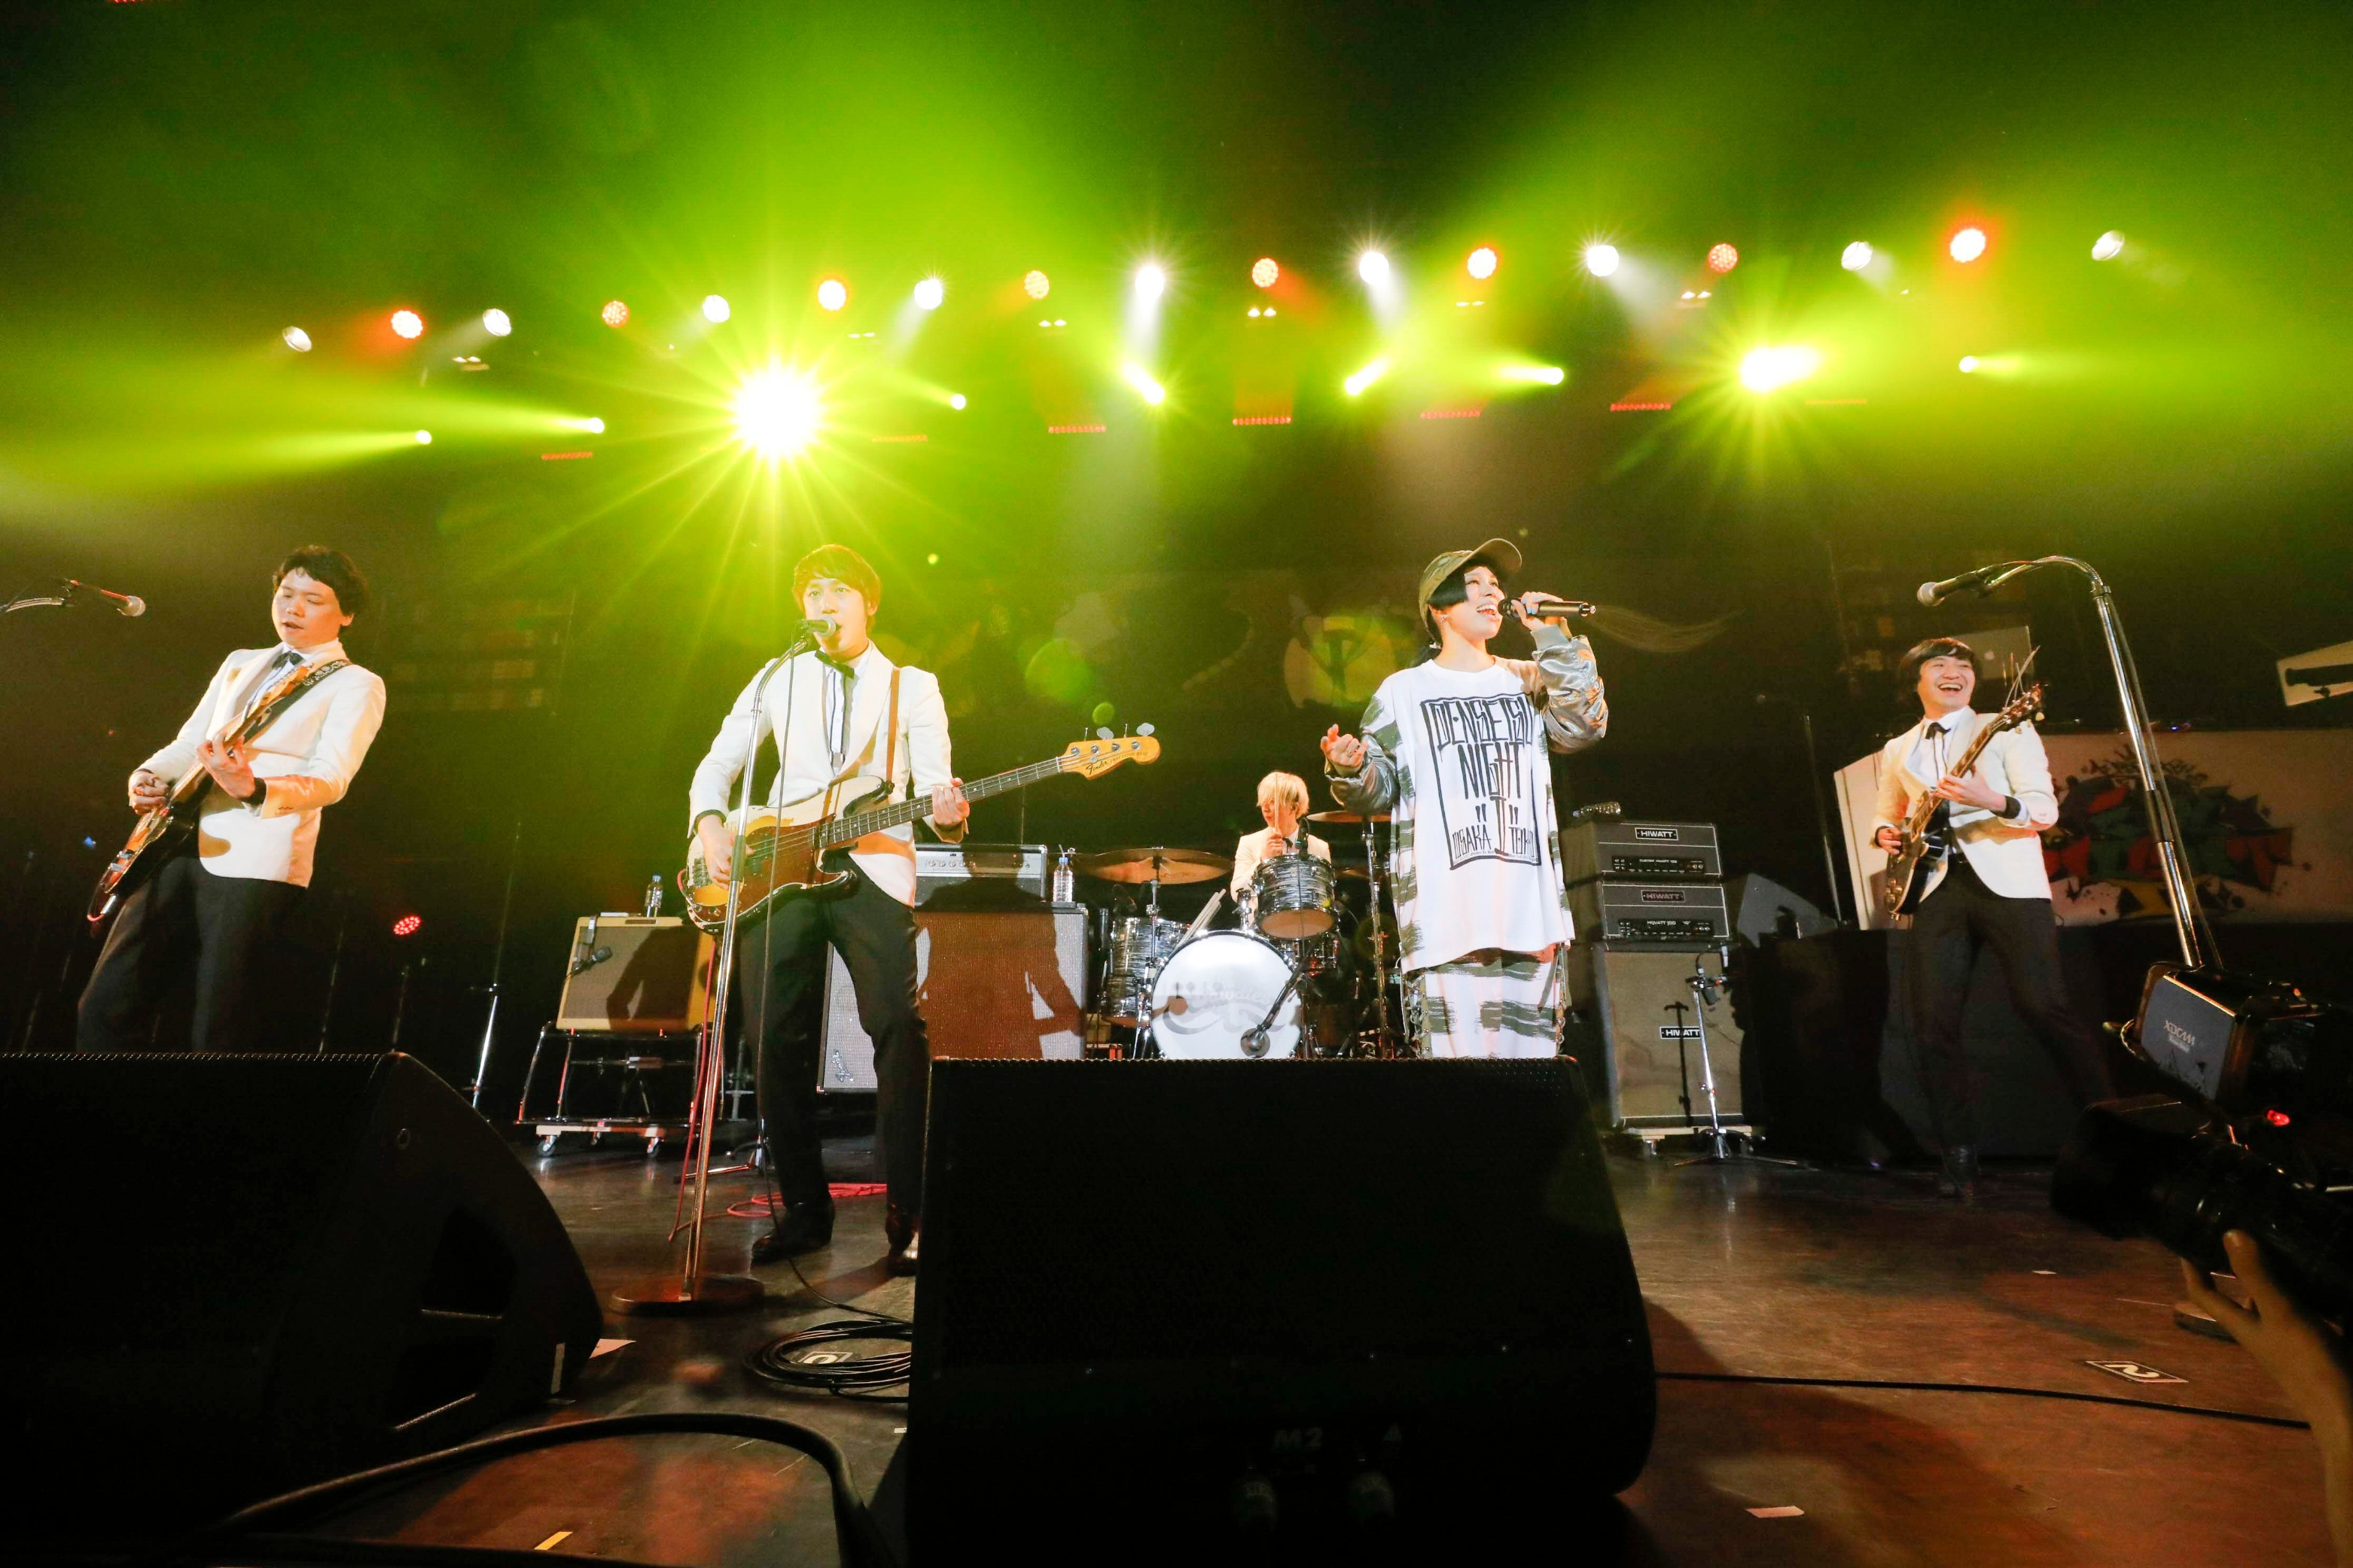 THE BAWDIES photo by HAJIME KAMIIISAKA